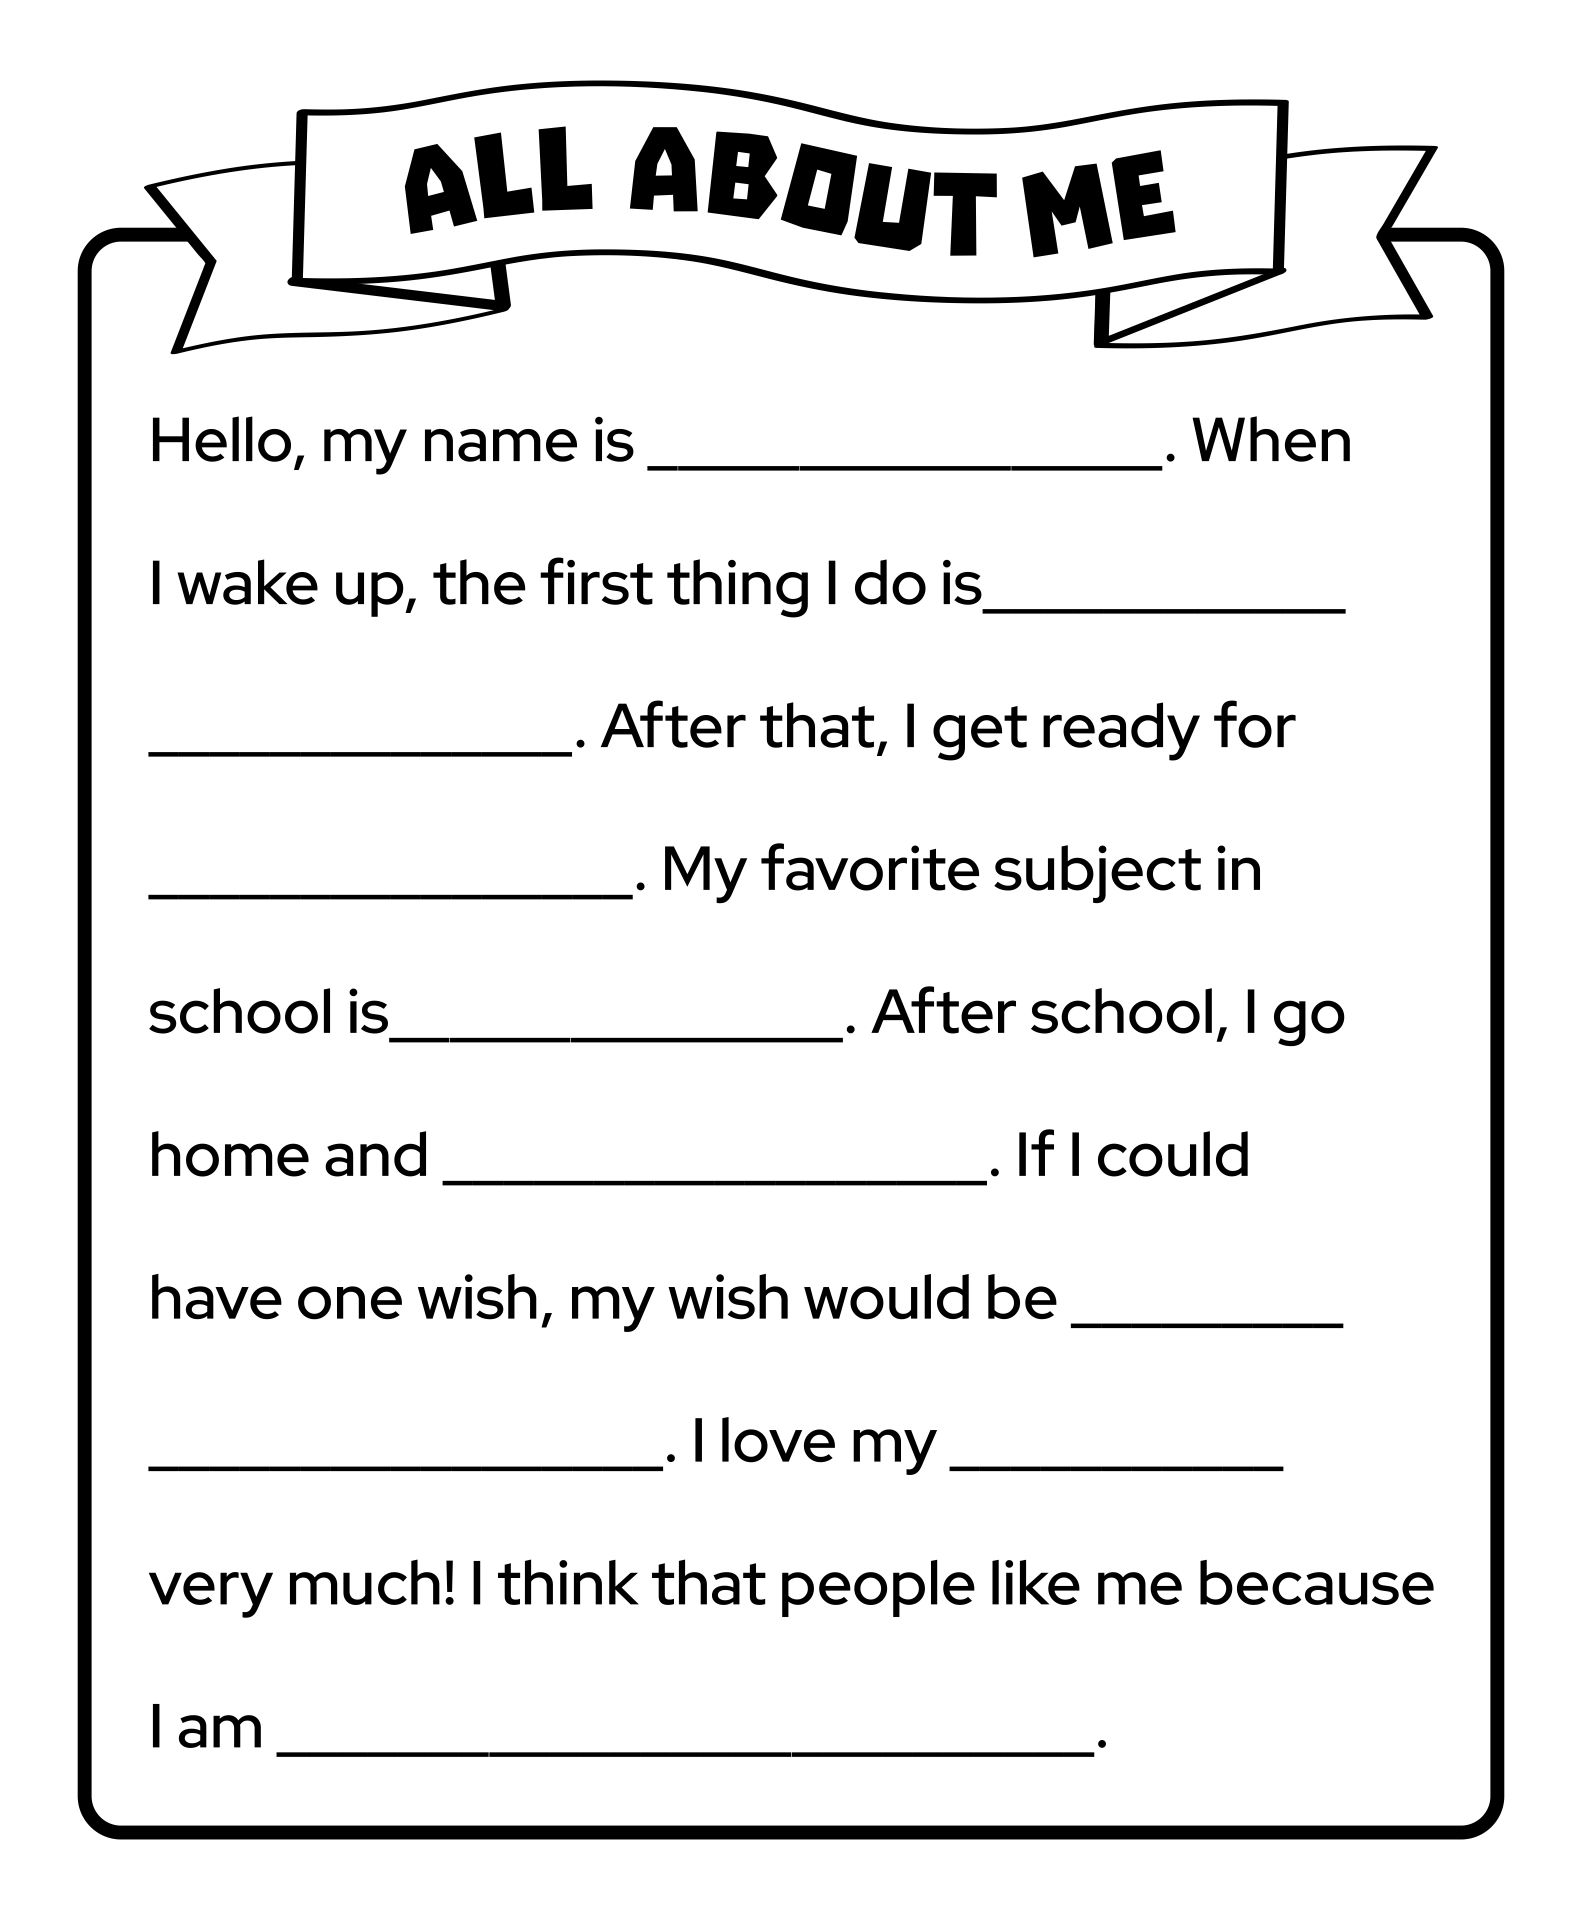 Printable Worksheets About.me Adult